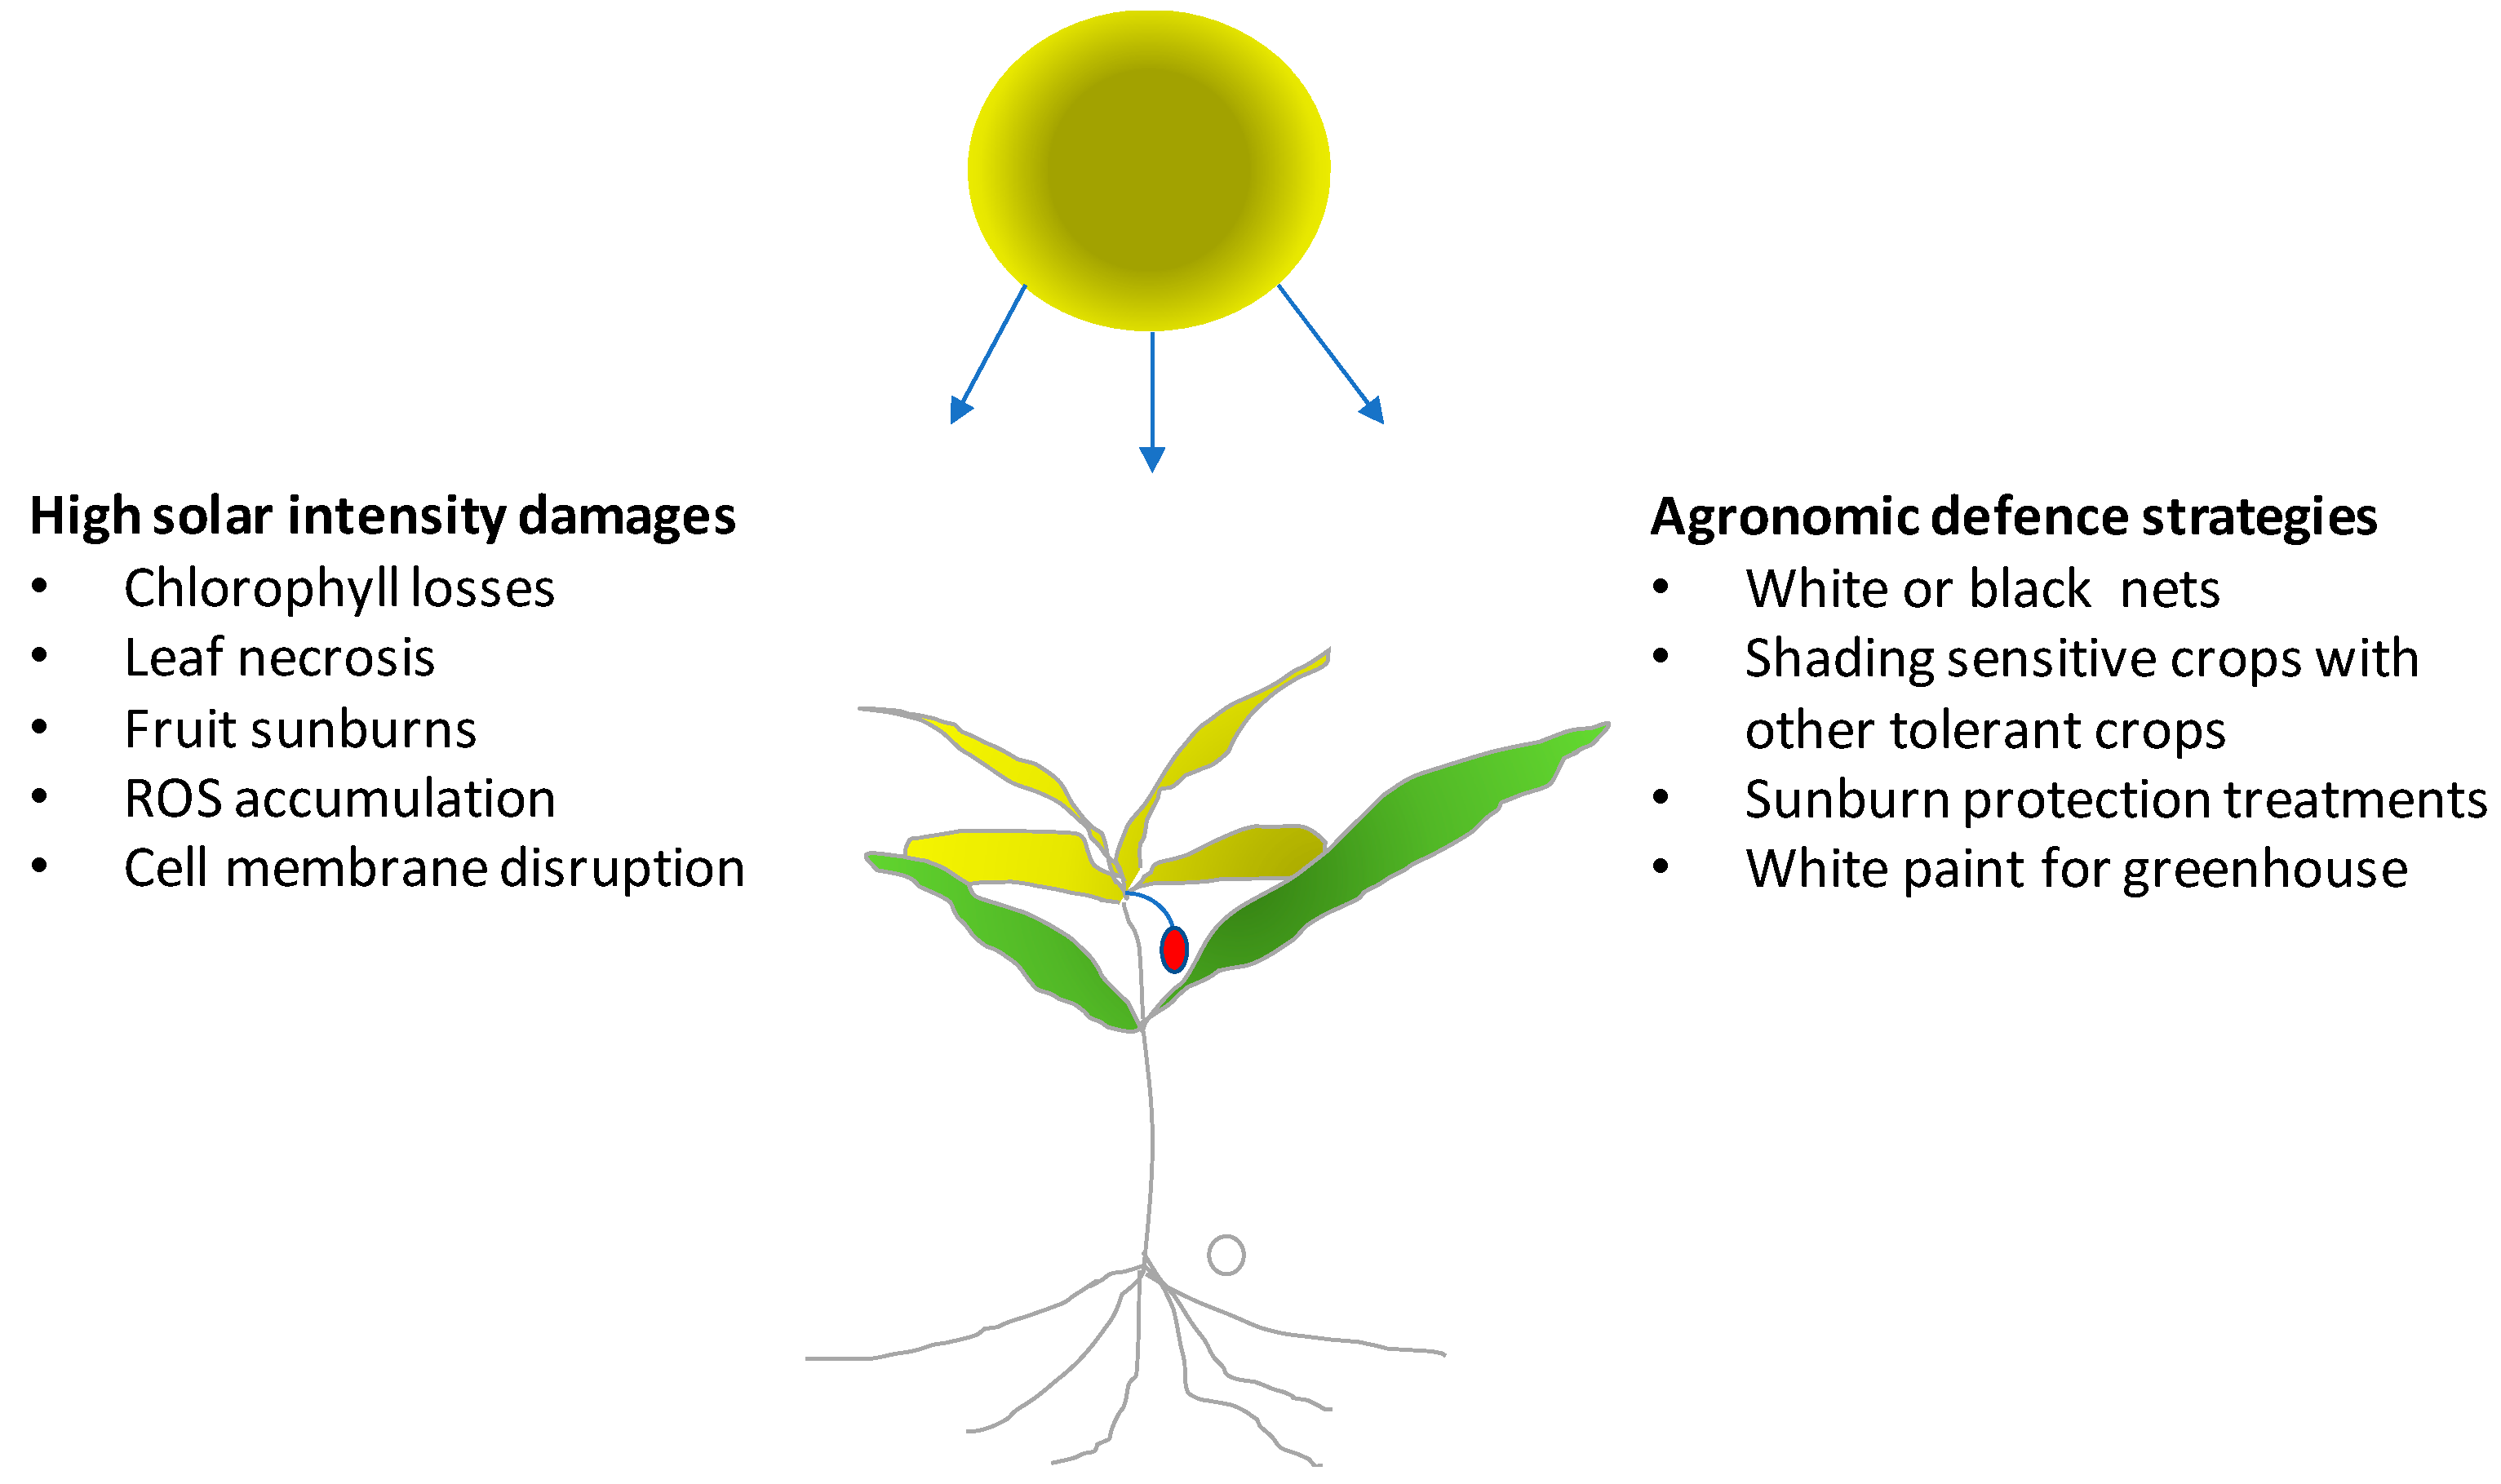 Horticulturae Free Full Text Agronomic Management For Enhancing Plant Tolerance To Abiotic Stresses High And Low Values Of Temperature Light Intensity And Relative Humidity